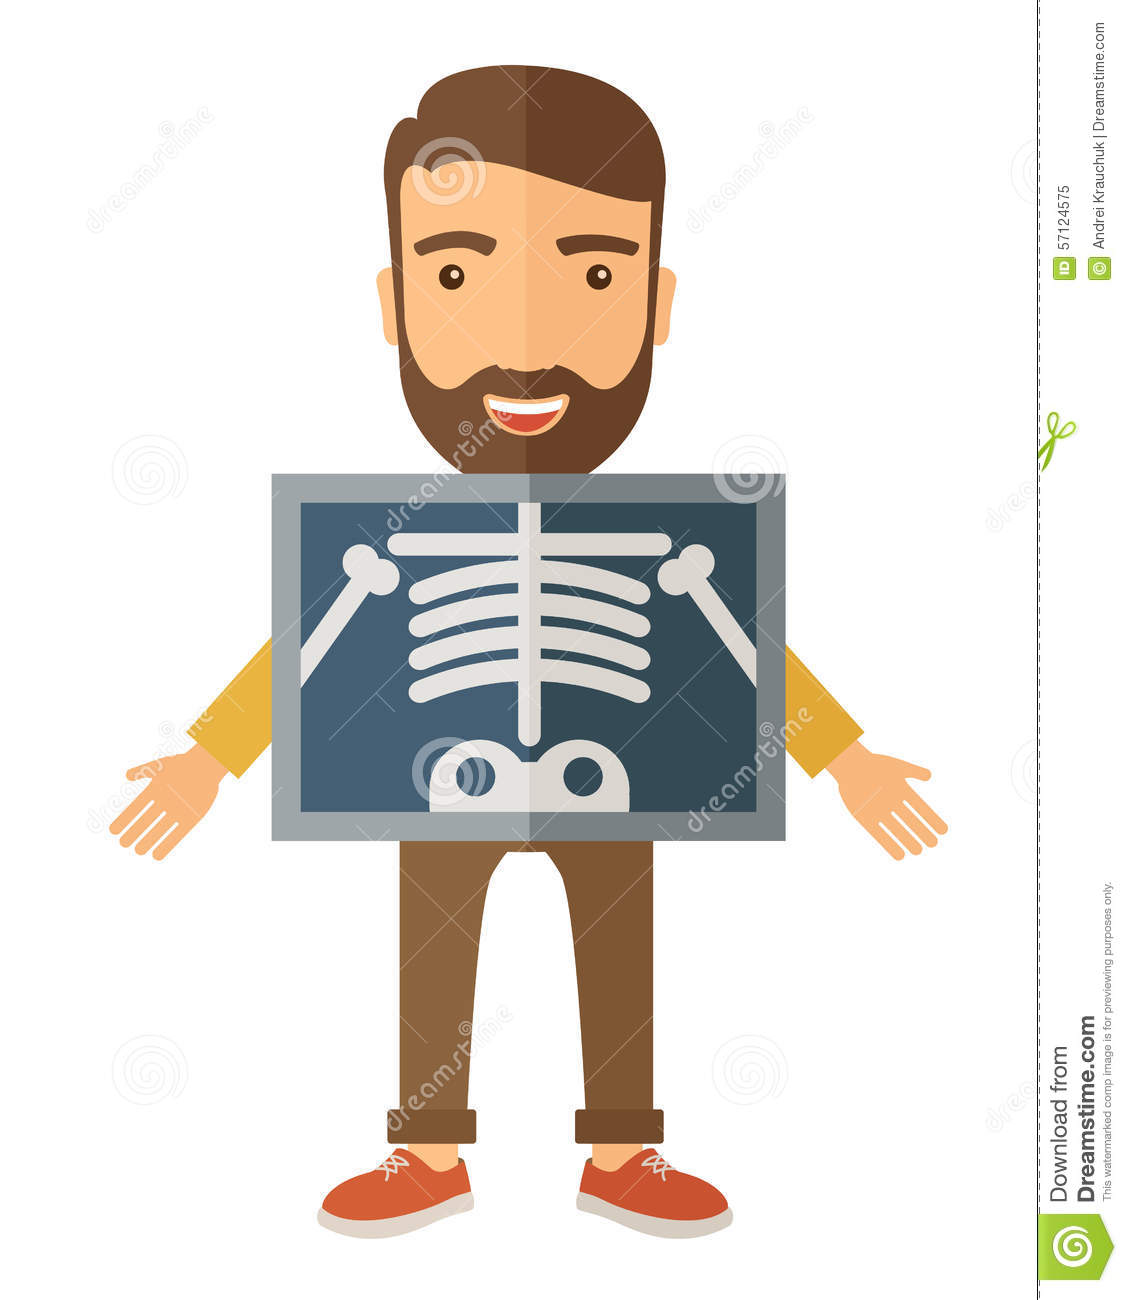 clipart xray - photo #47